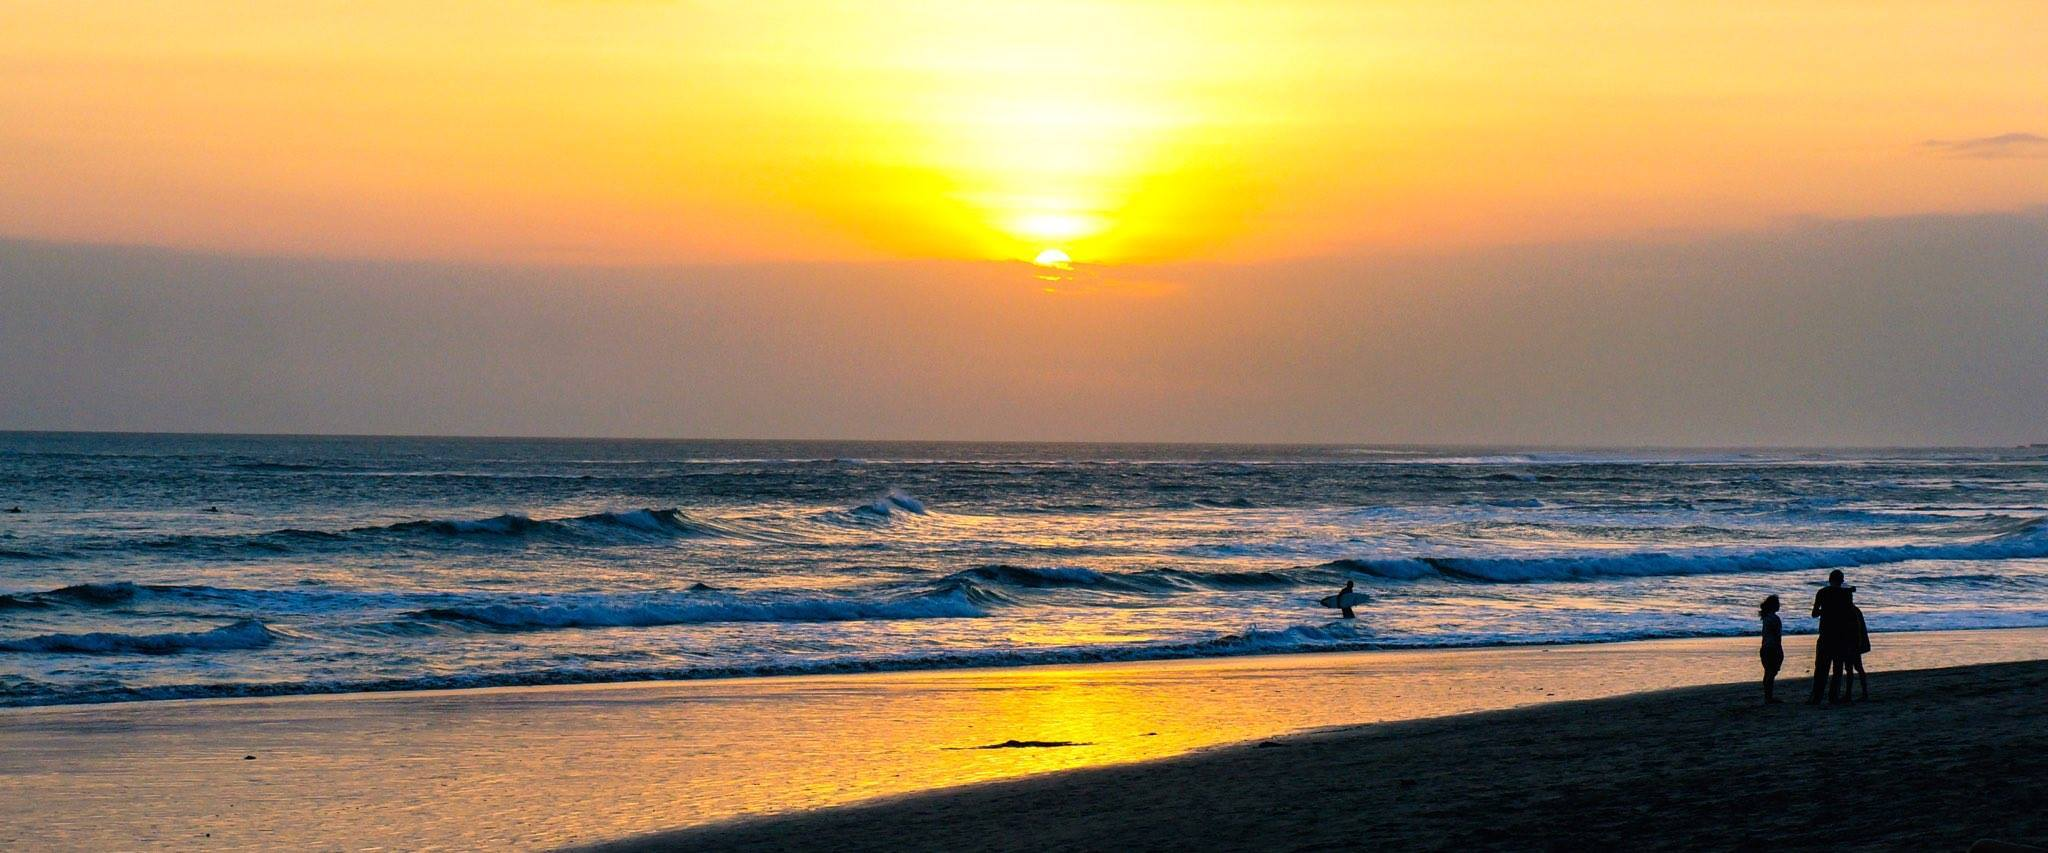 Surfing Bali Top Tips For Your First Bali Surf Trip Luex